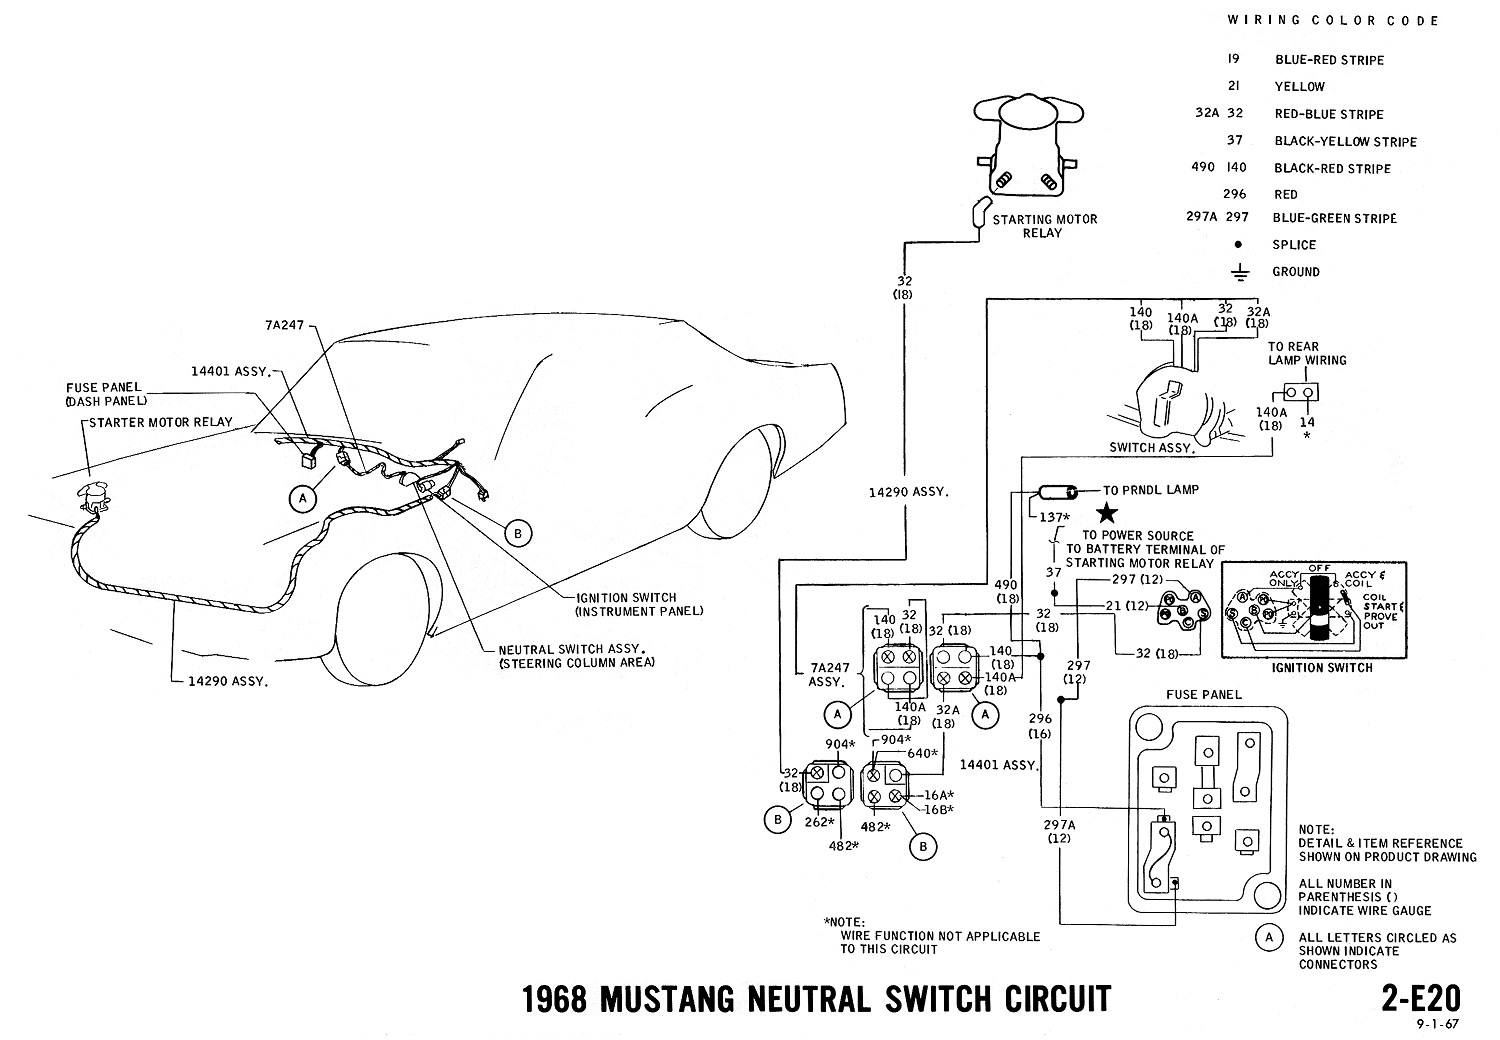 1968 mustang starter relay wiring diagram wiring diagram database1968 mustang wiring diagrams evolving software 1968 mustang starter relay wiring diagram